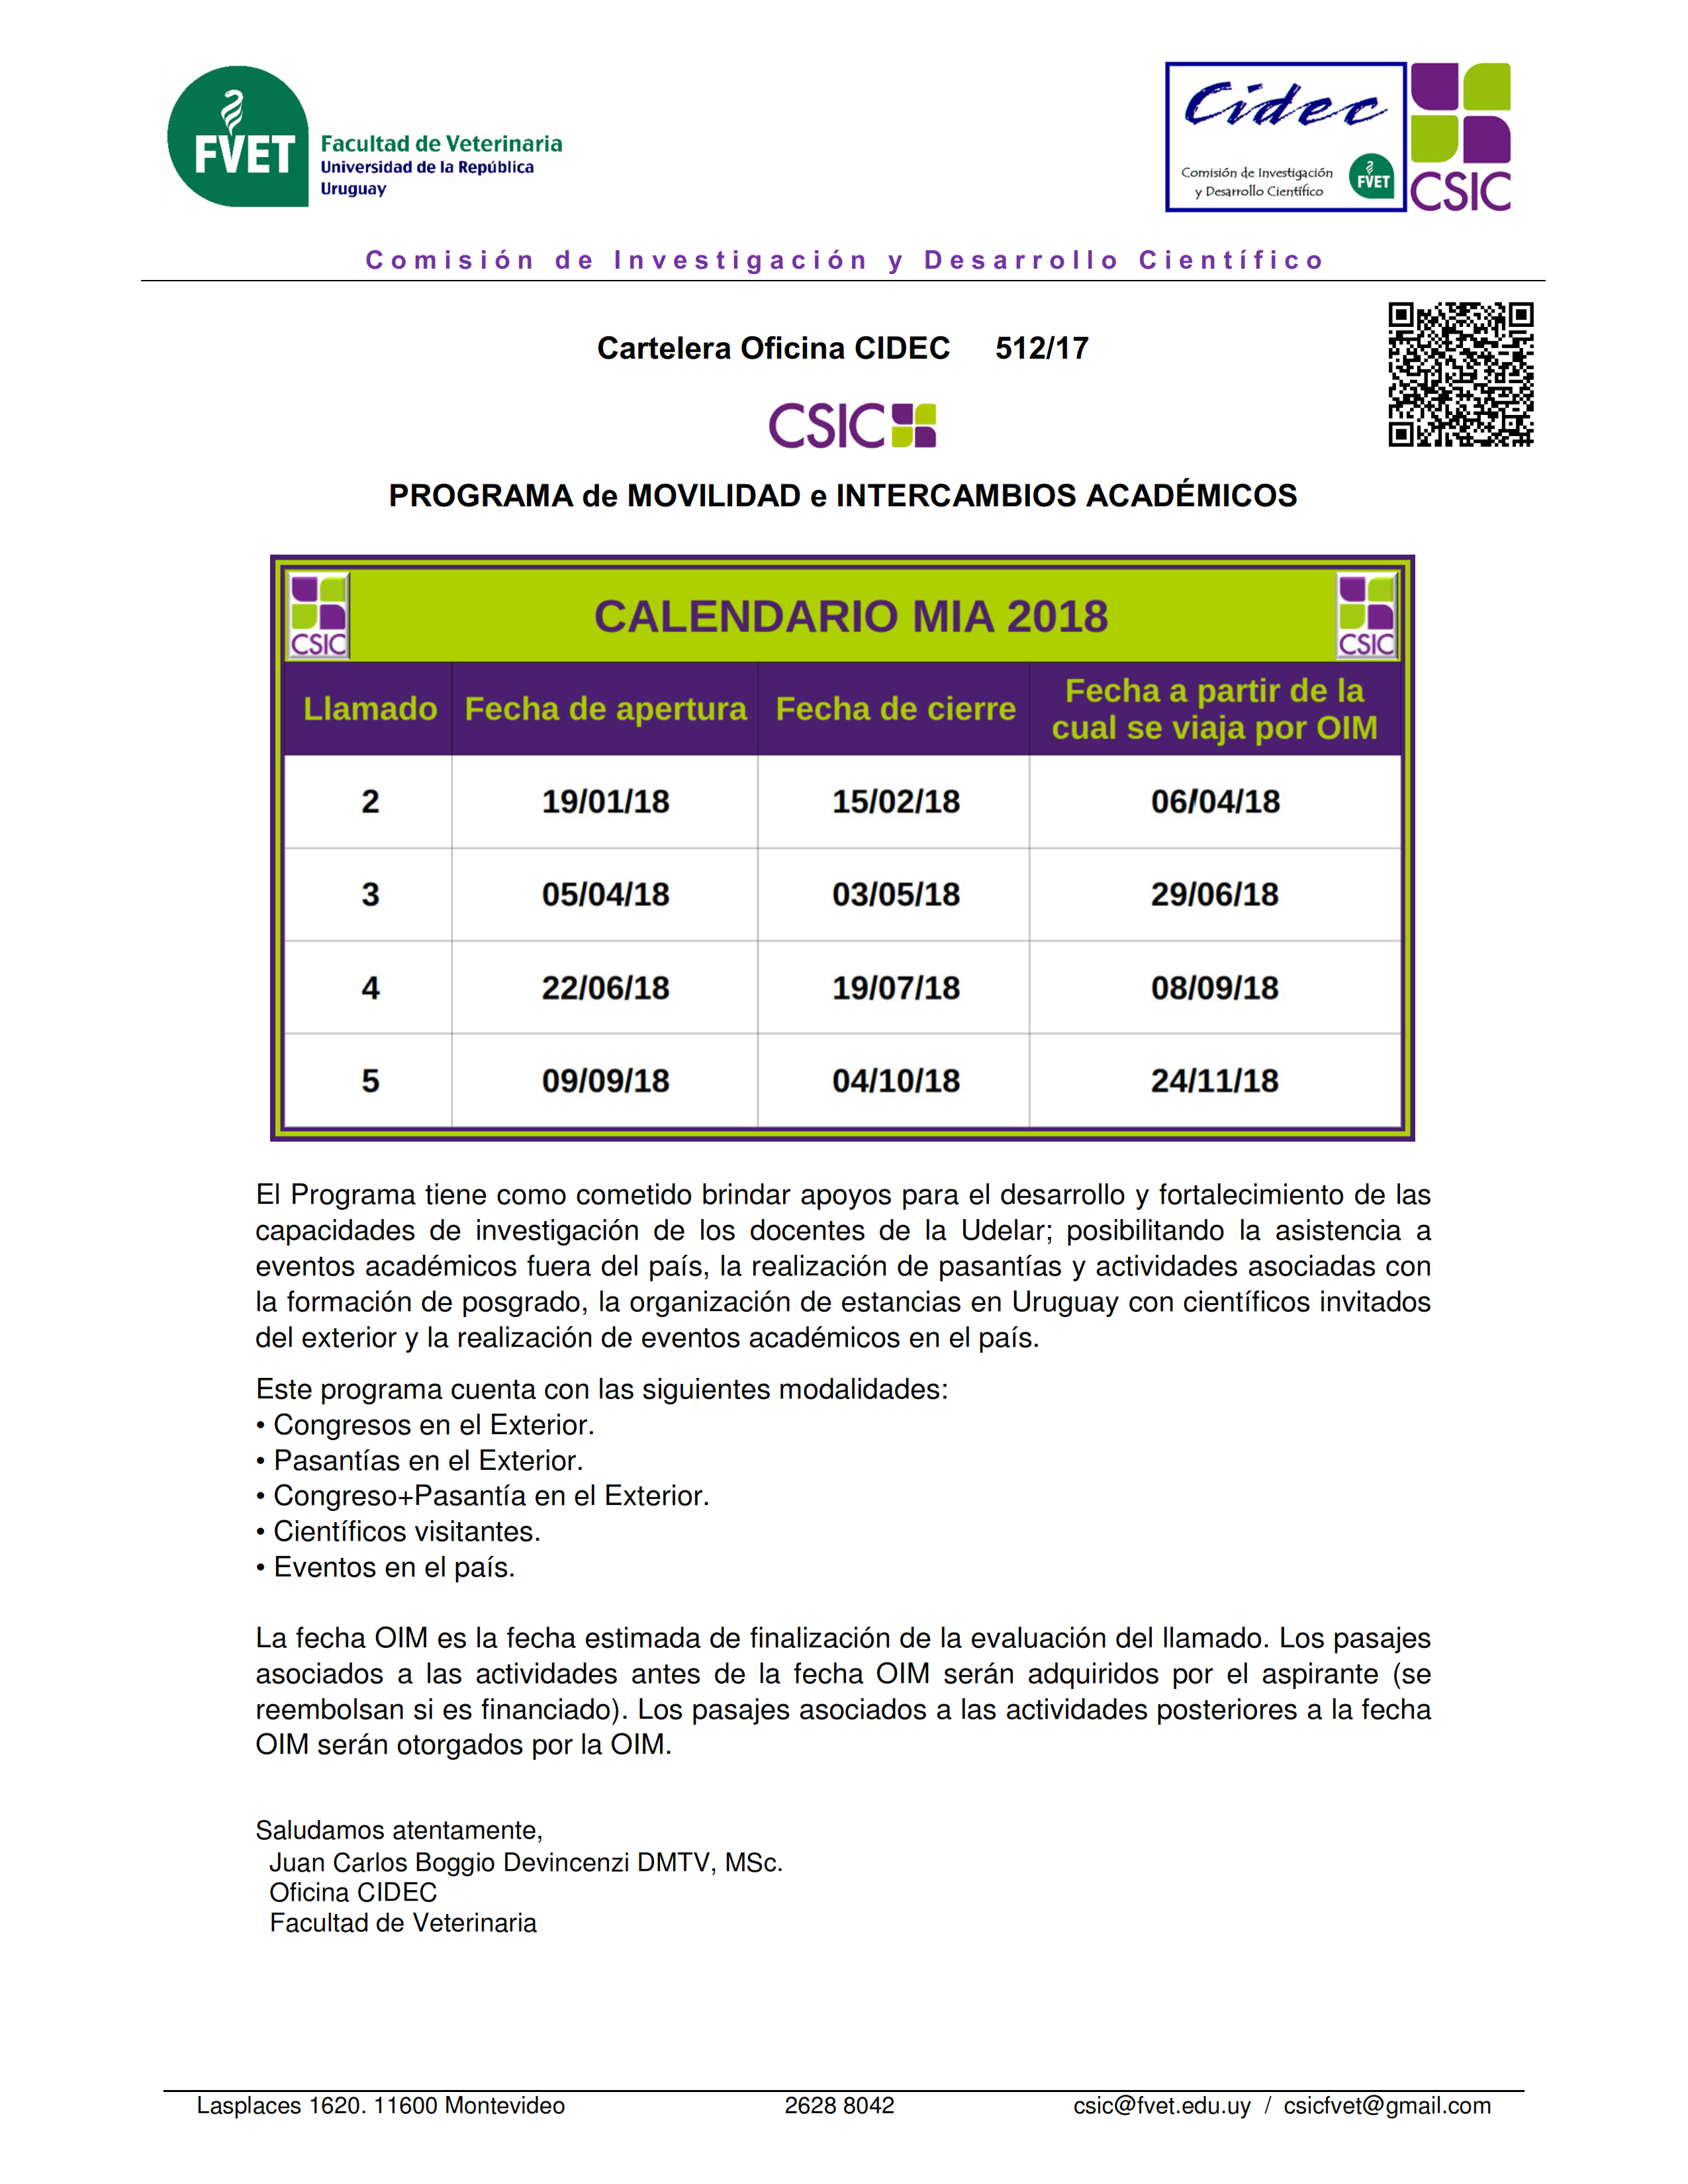 Cart CIDEC 512 2017 Calendario MIA 2018 001